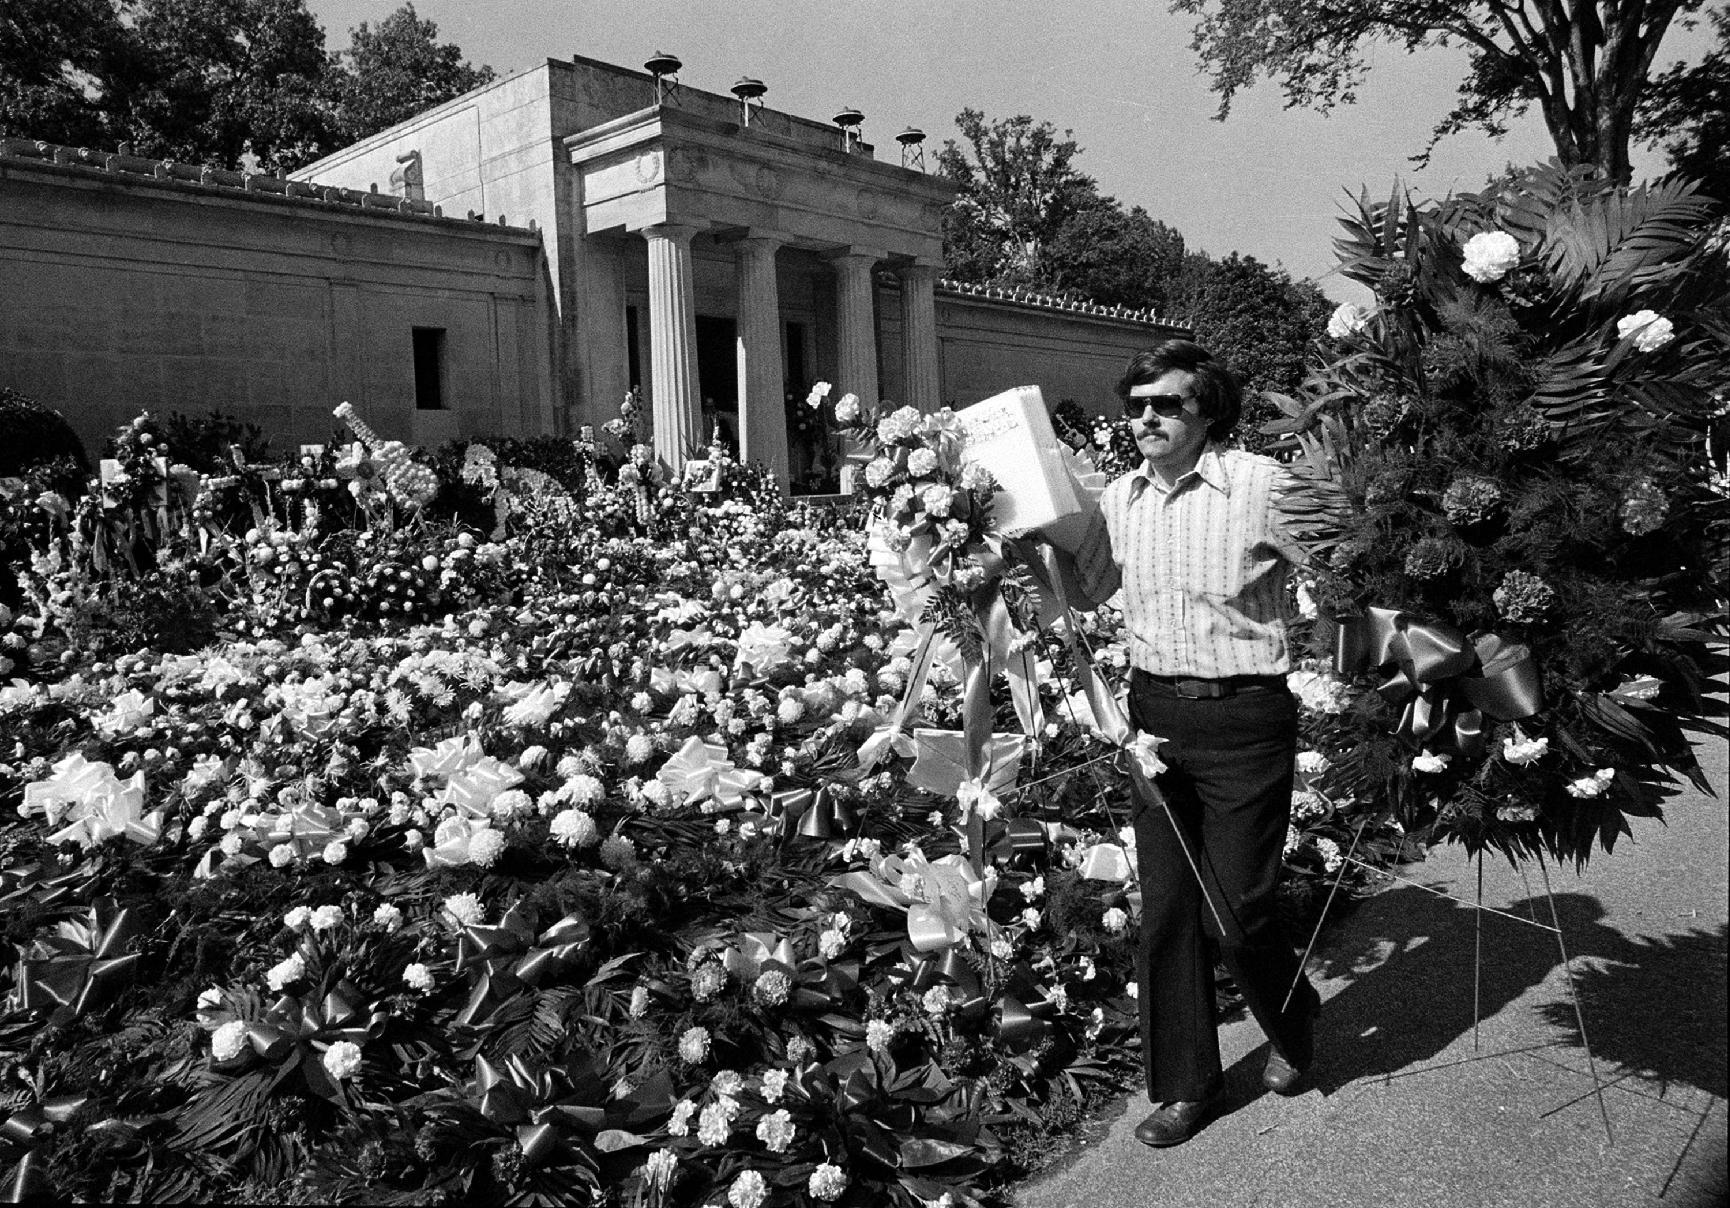 """FILE - In this Aug. 18, 1977 file photo, a florist adds more floral arrangements to the overflowing collection of flowers that cover the ground at the mausoleum where singer Elvis Presley will be entombed during funeral services today in Memphis, Tenn. Celebrity auctioneer Darren Julien says the crypt inside the granite and marble mausoleum where Presley was originally entombed at the Forest Hill Cemetery in Memphis, Tenn., will be part of his """"Music Icons"""" auction on June 23 and 24, 2012, in Beverly Hills, Calif. (AP Photo, File)"""